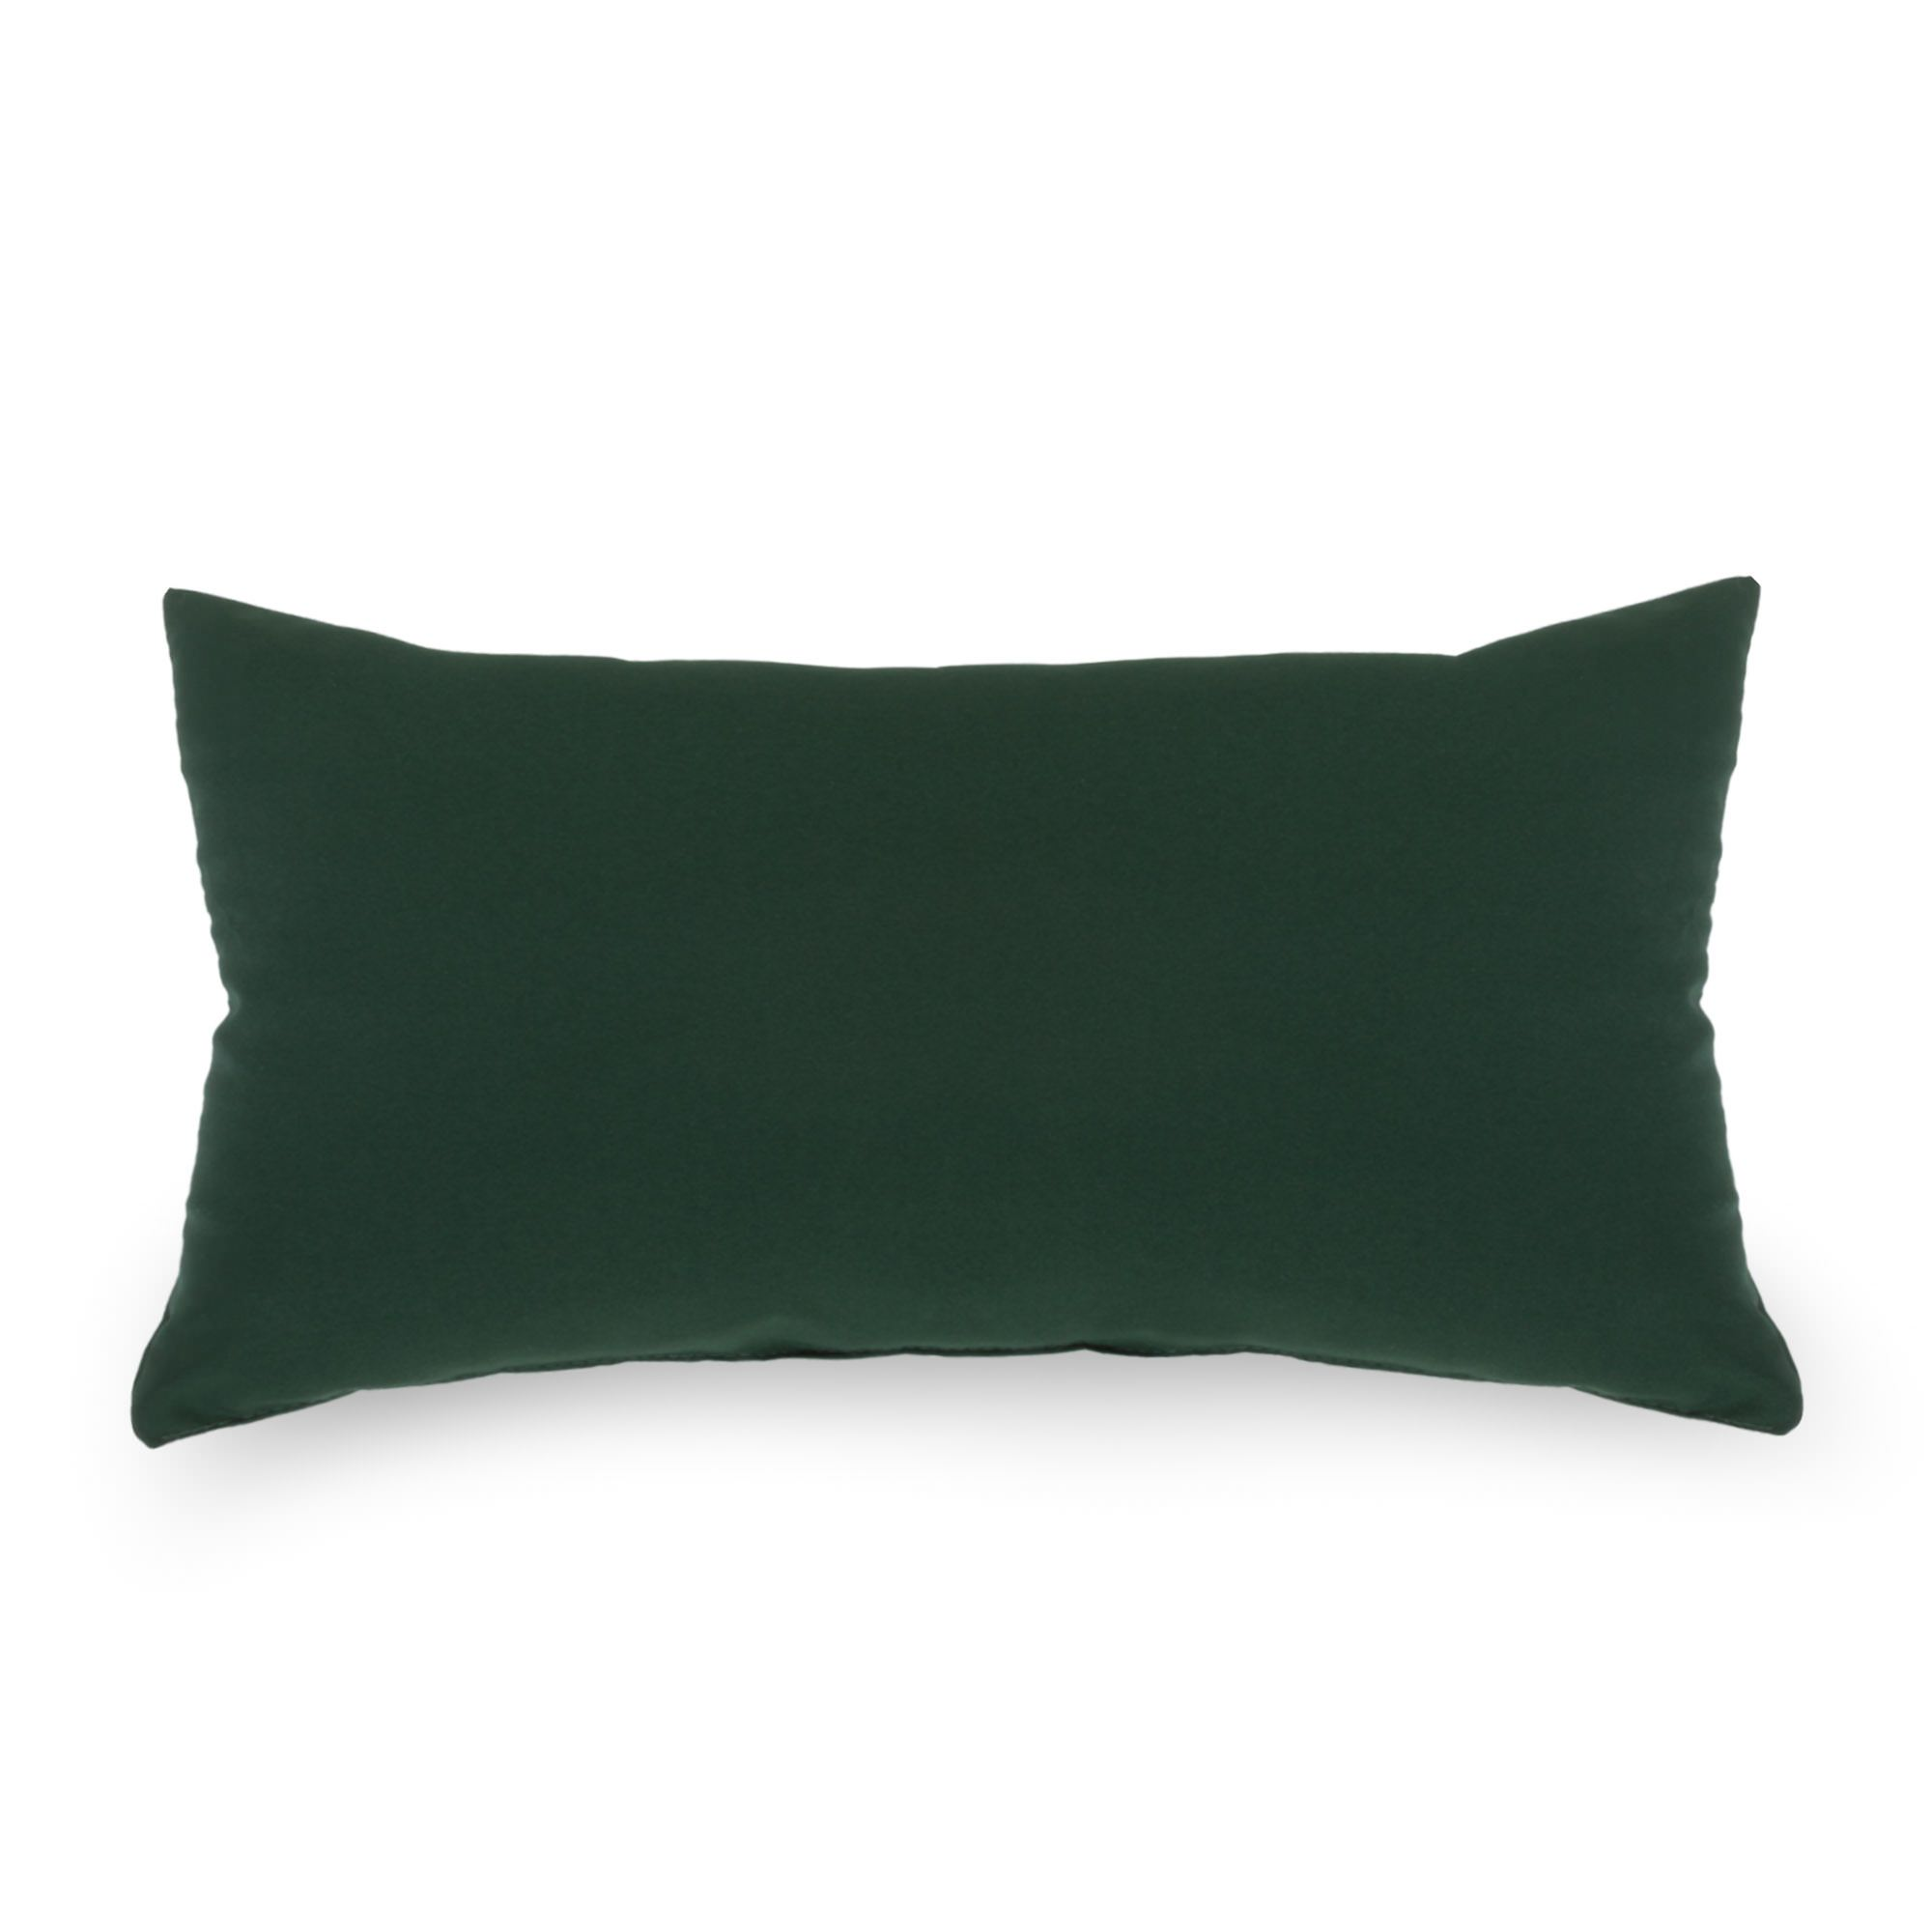 Green Outdoor Throw Pillow 19 in. x 10 in. Rectangle/Lumbar SKU: BSQIGRR DFOHome